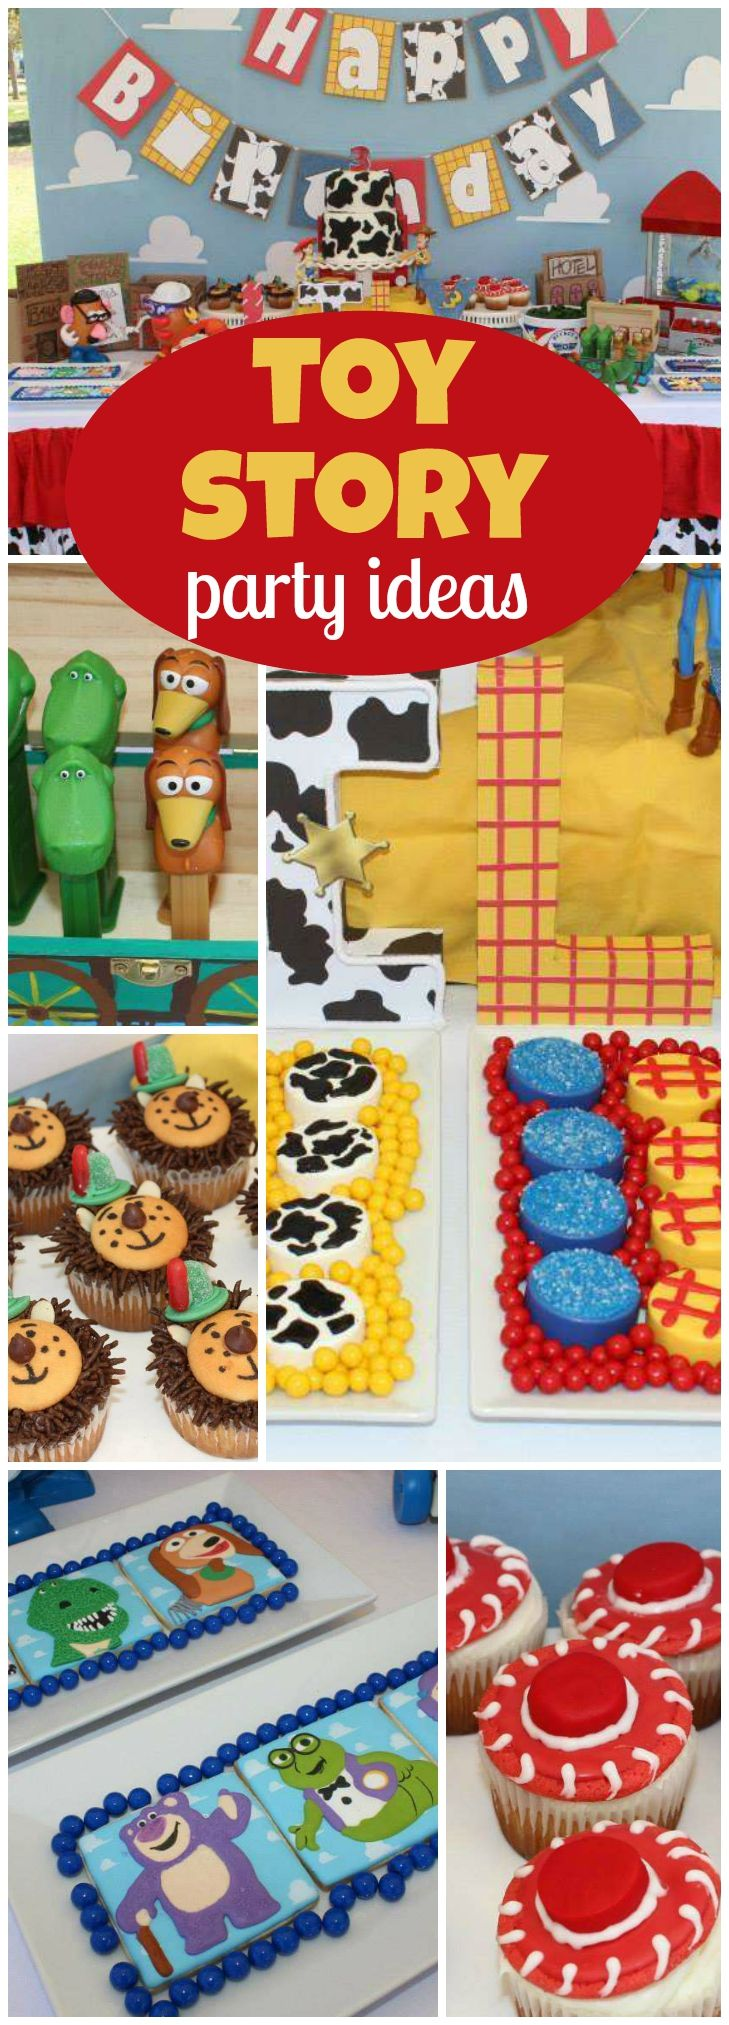 Toy story party ideas birthday in a box - Toy Story Birthday Toy Story 3rd Birthday Party